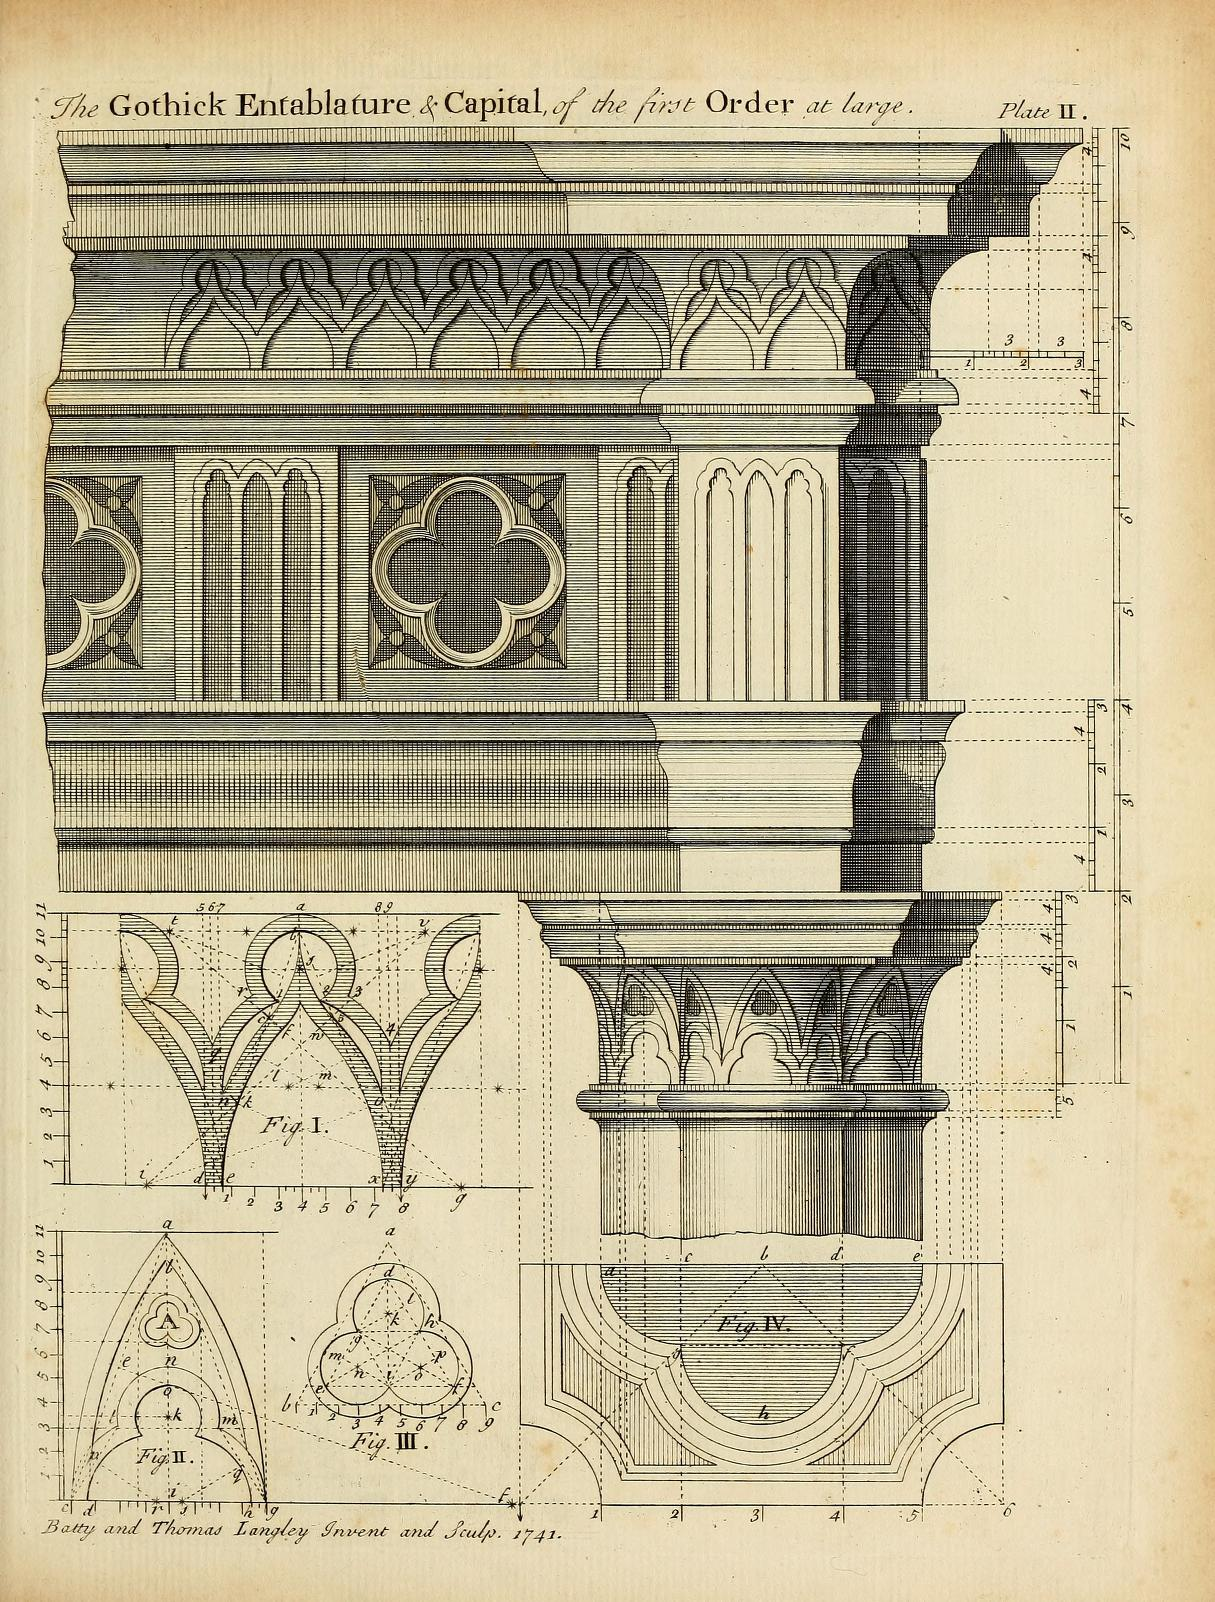 1215x1602 Gothic Order Drawing For Entablature And Capital To The Trade